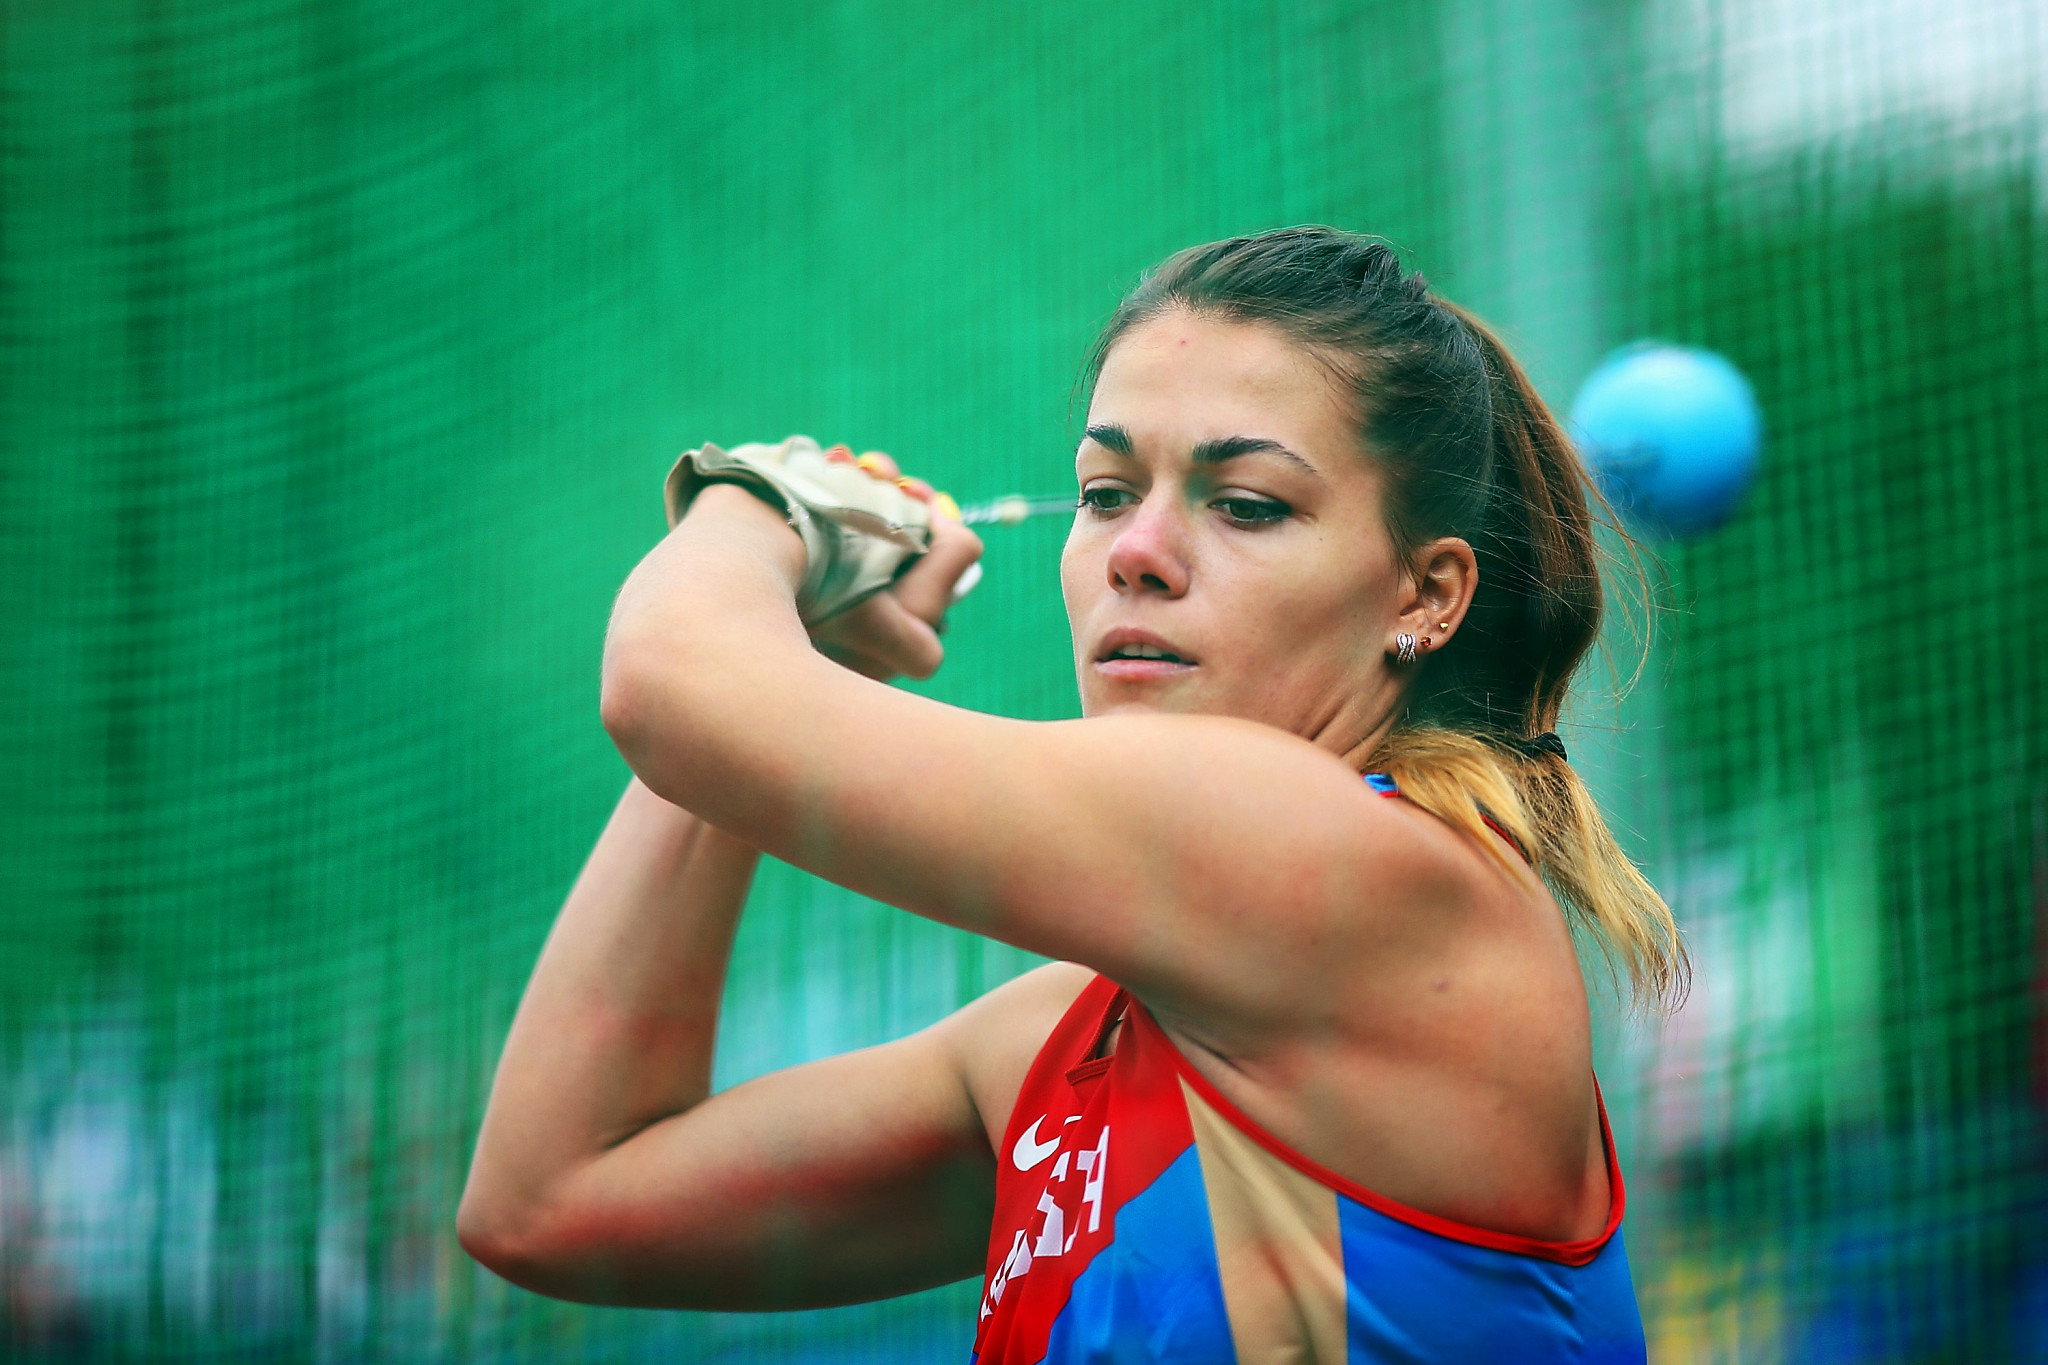 Hammer thrower Yelizaveta Tsareva is among the five Russian athletes to have had an application approved by the IAAF to compete neutrally in 2018 ©Getty Images